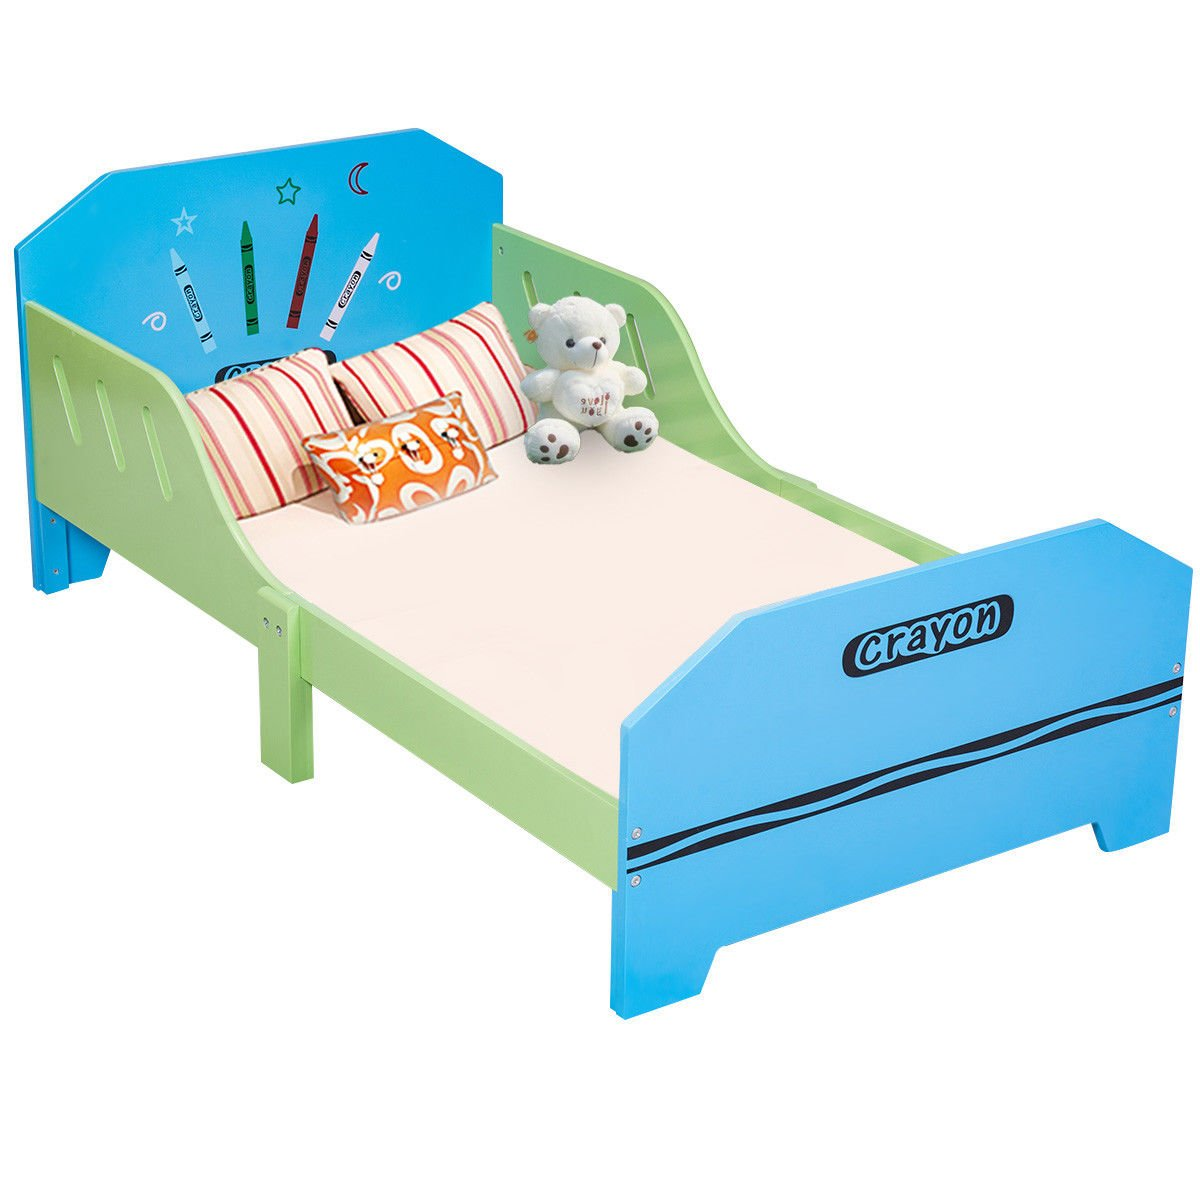 Globe House Products GHP 53.1''x29.1''x21.7'' Blue & Green MDF Crayon Themed Kids Wooden Bed with Bed Rails